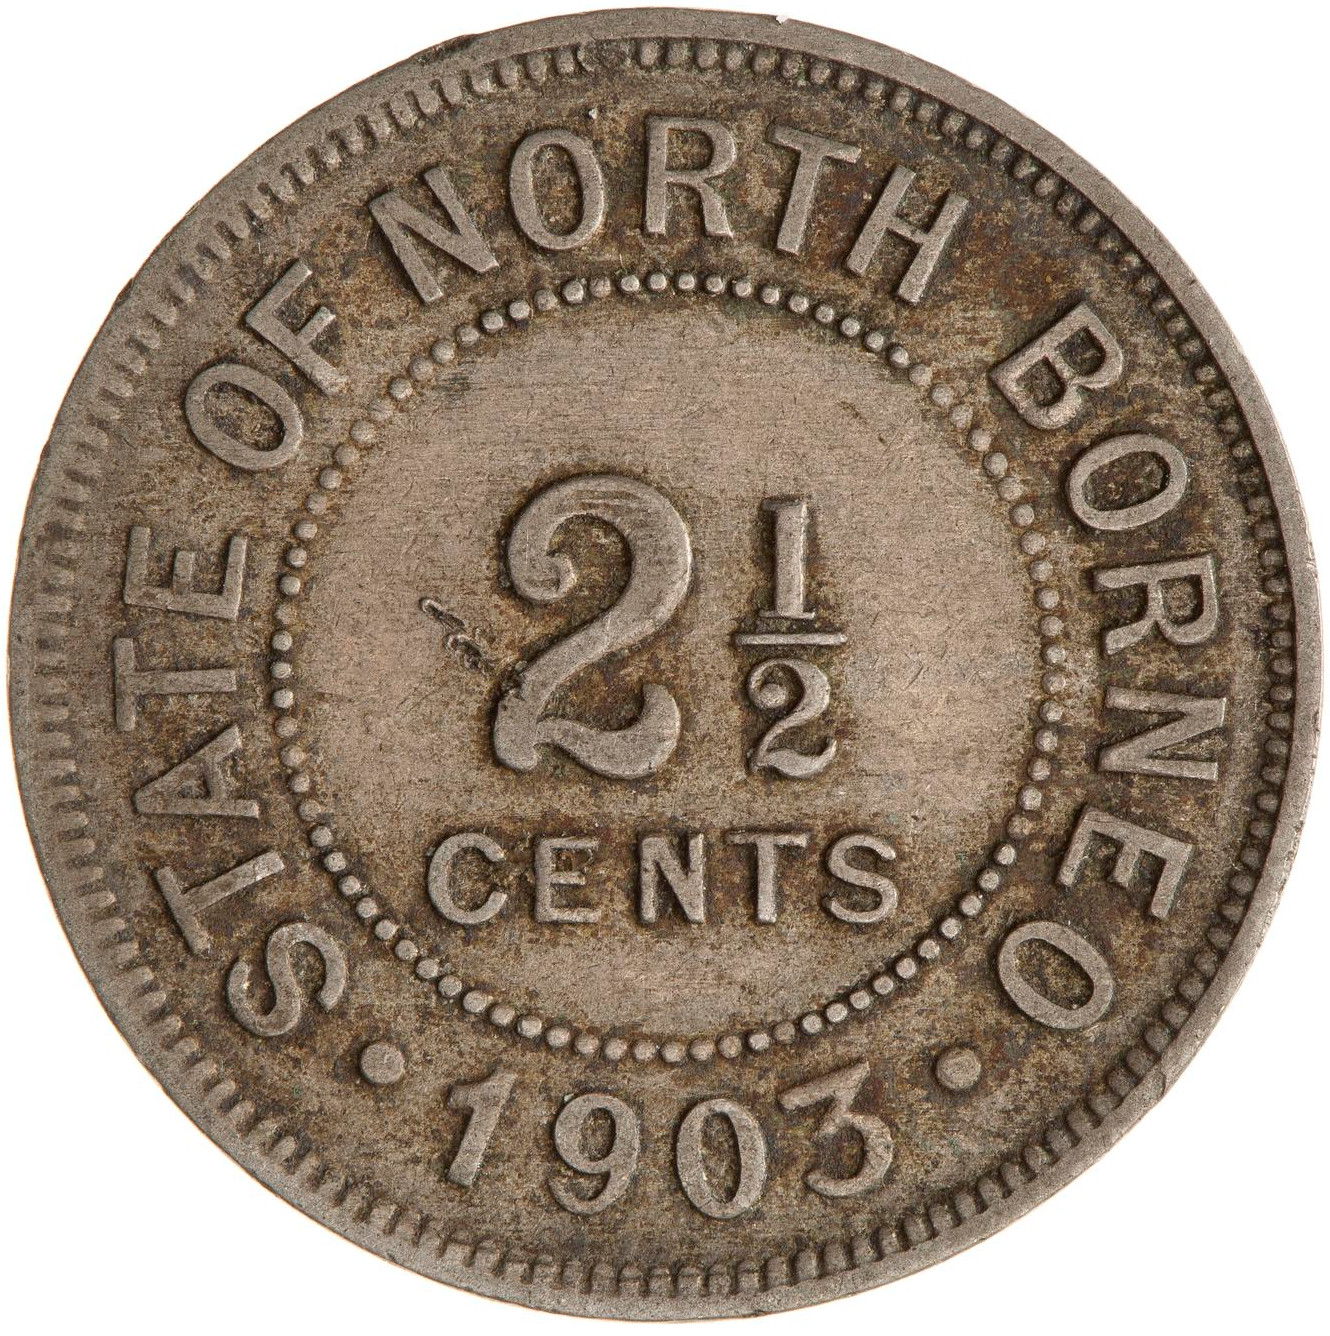 Two and a Half Cents 1903: Photo Coin - 2 1/2 Cents, North Borneo, 1903